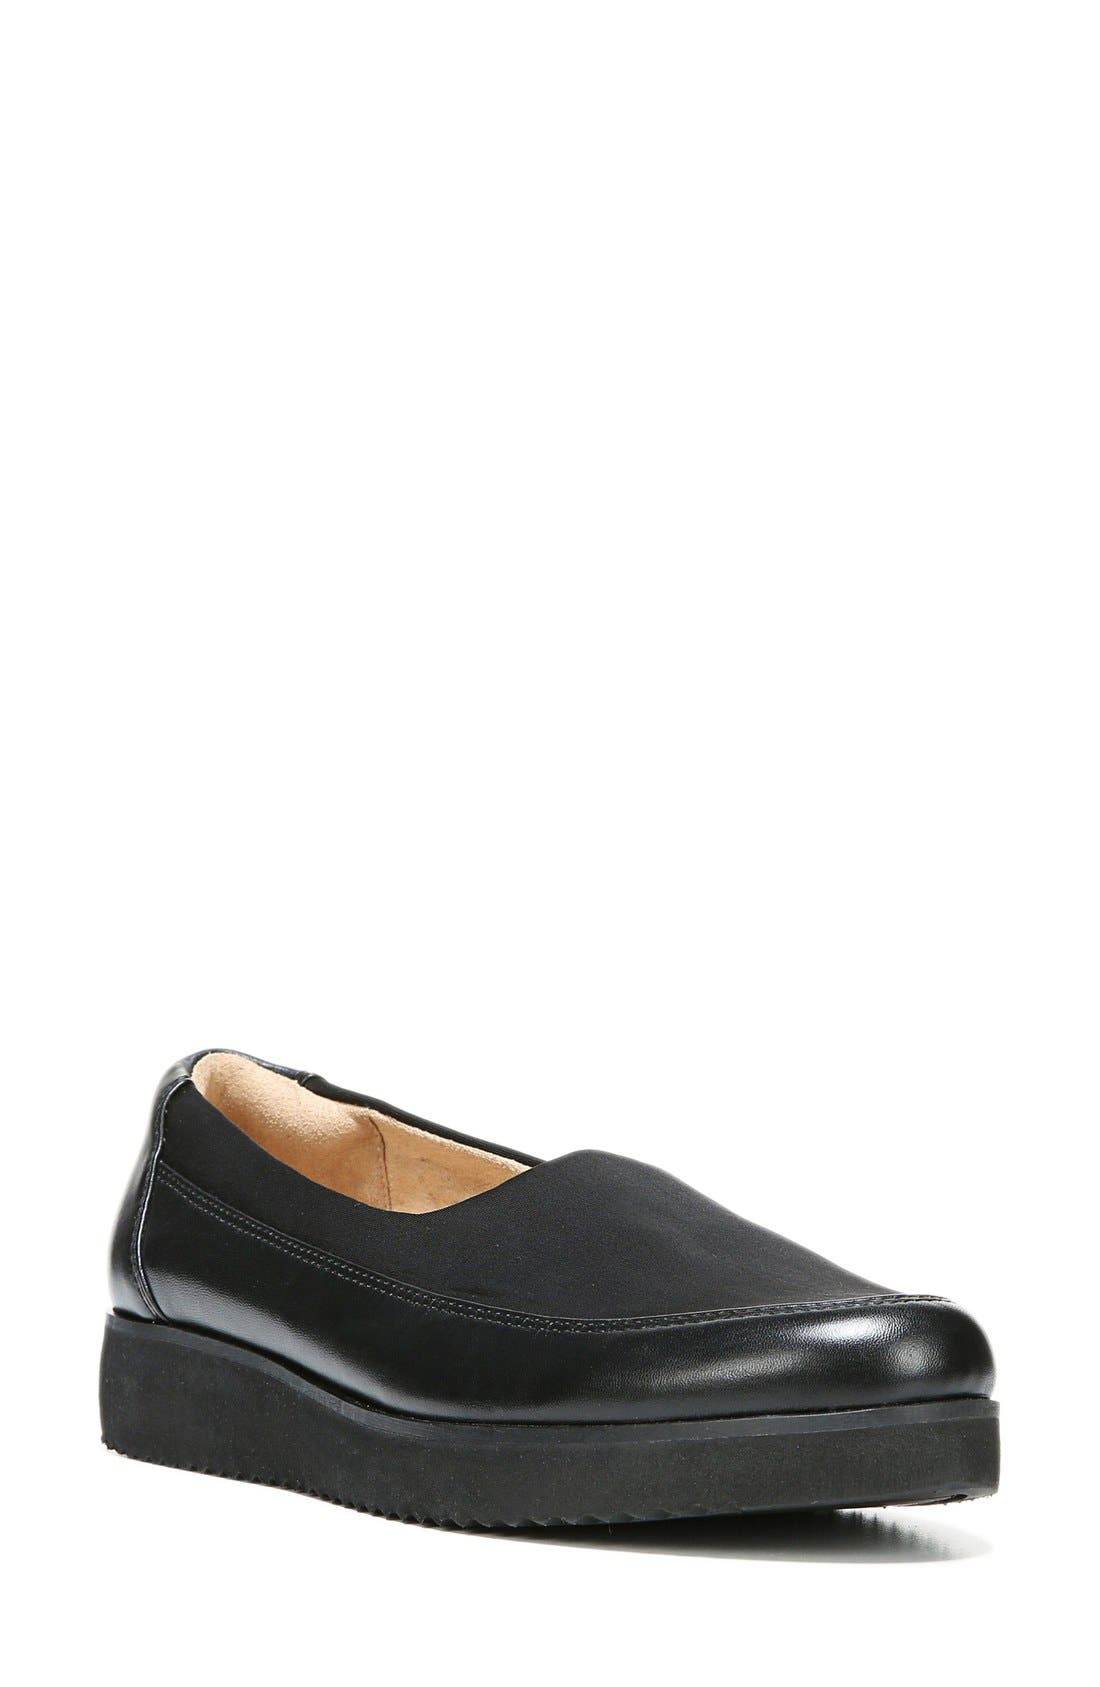 Alternate Image 1 Selected - Naturalizer 'Neoma' Loafer (Women)